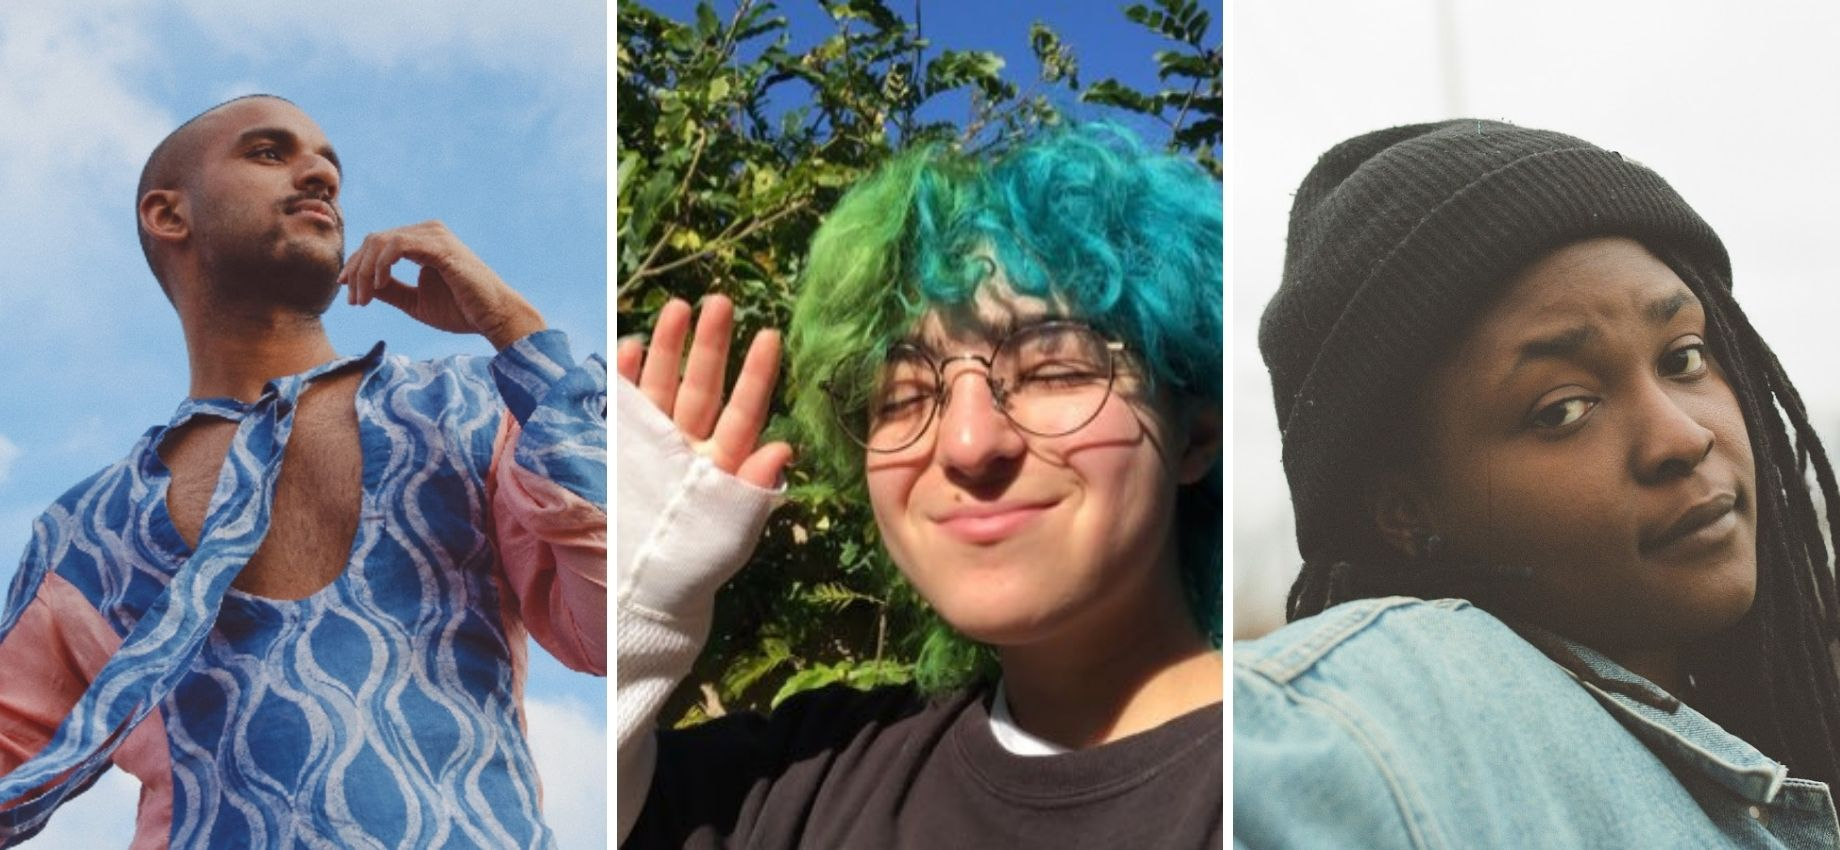 7 LGBTQ+ Artists You Should Check Out This Pride 2021